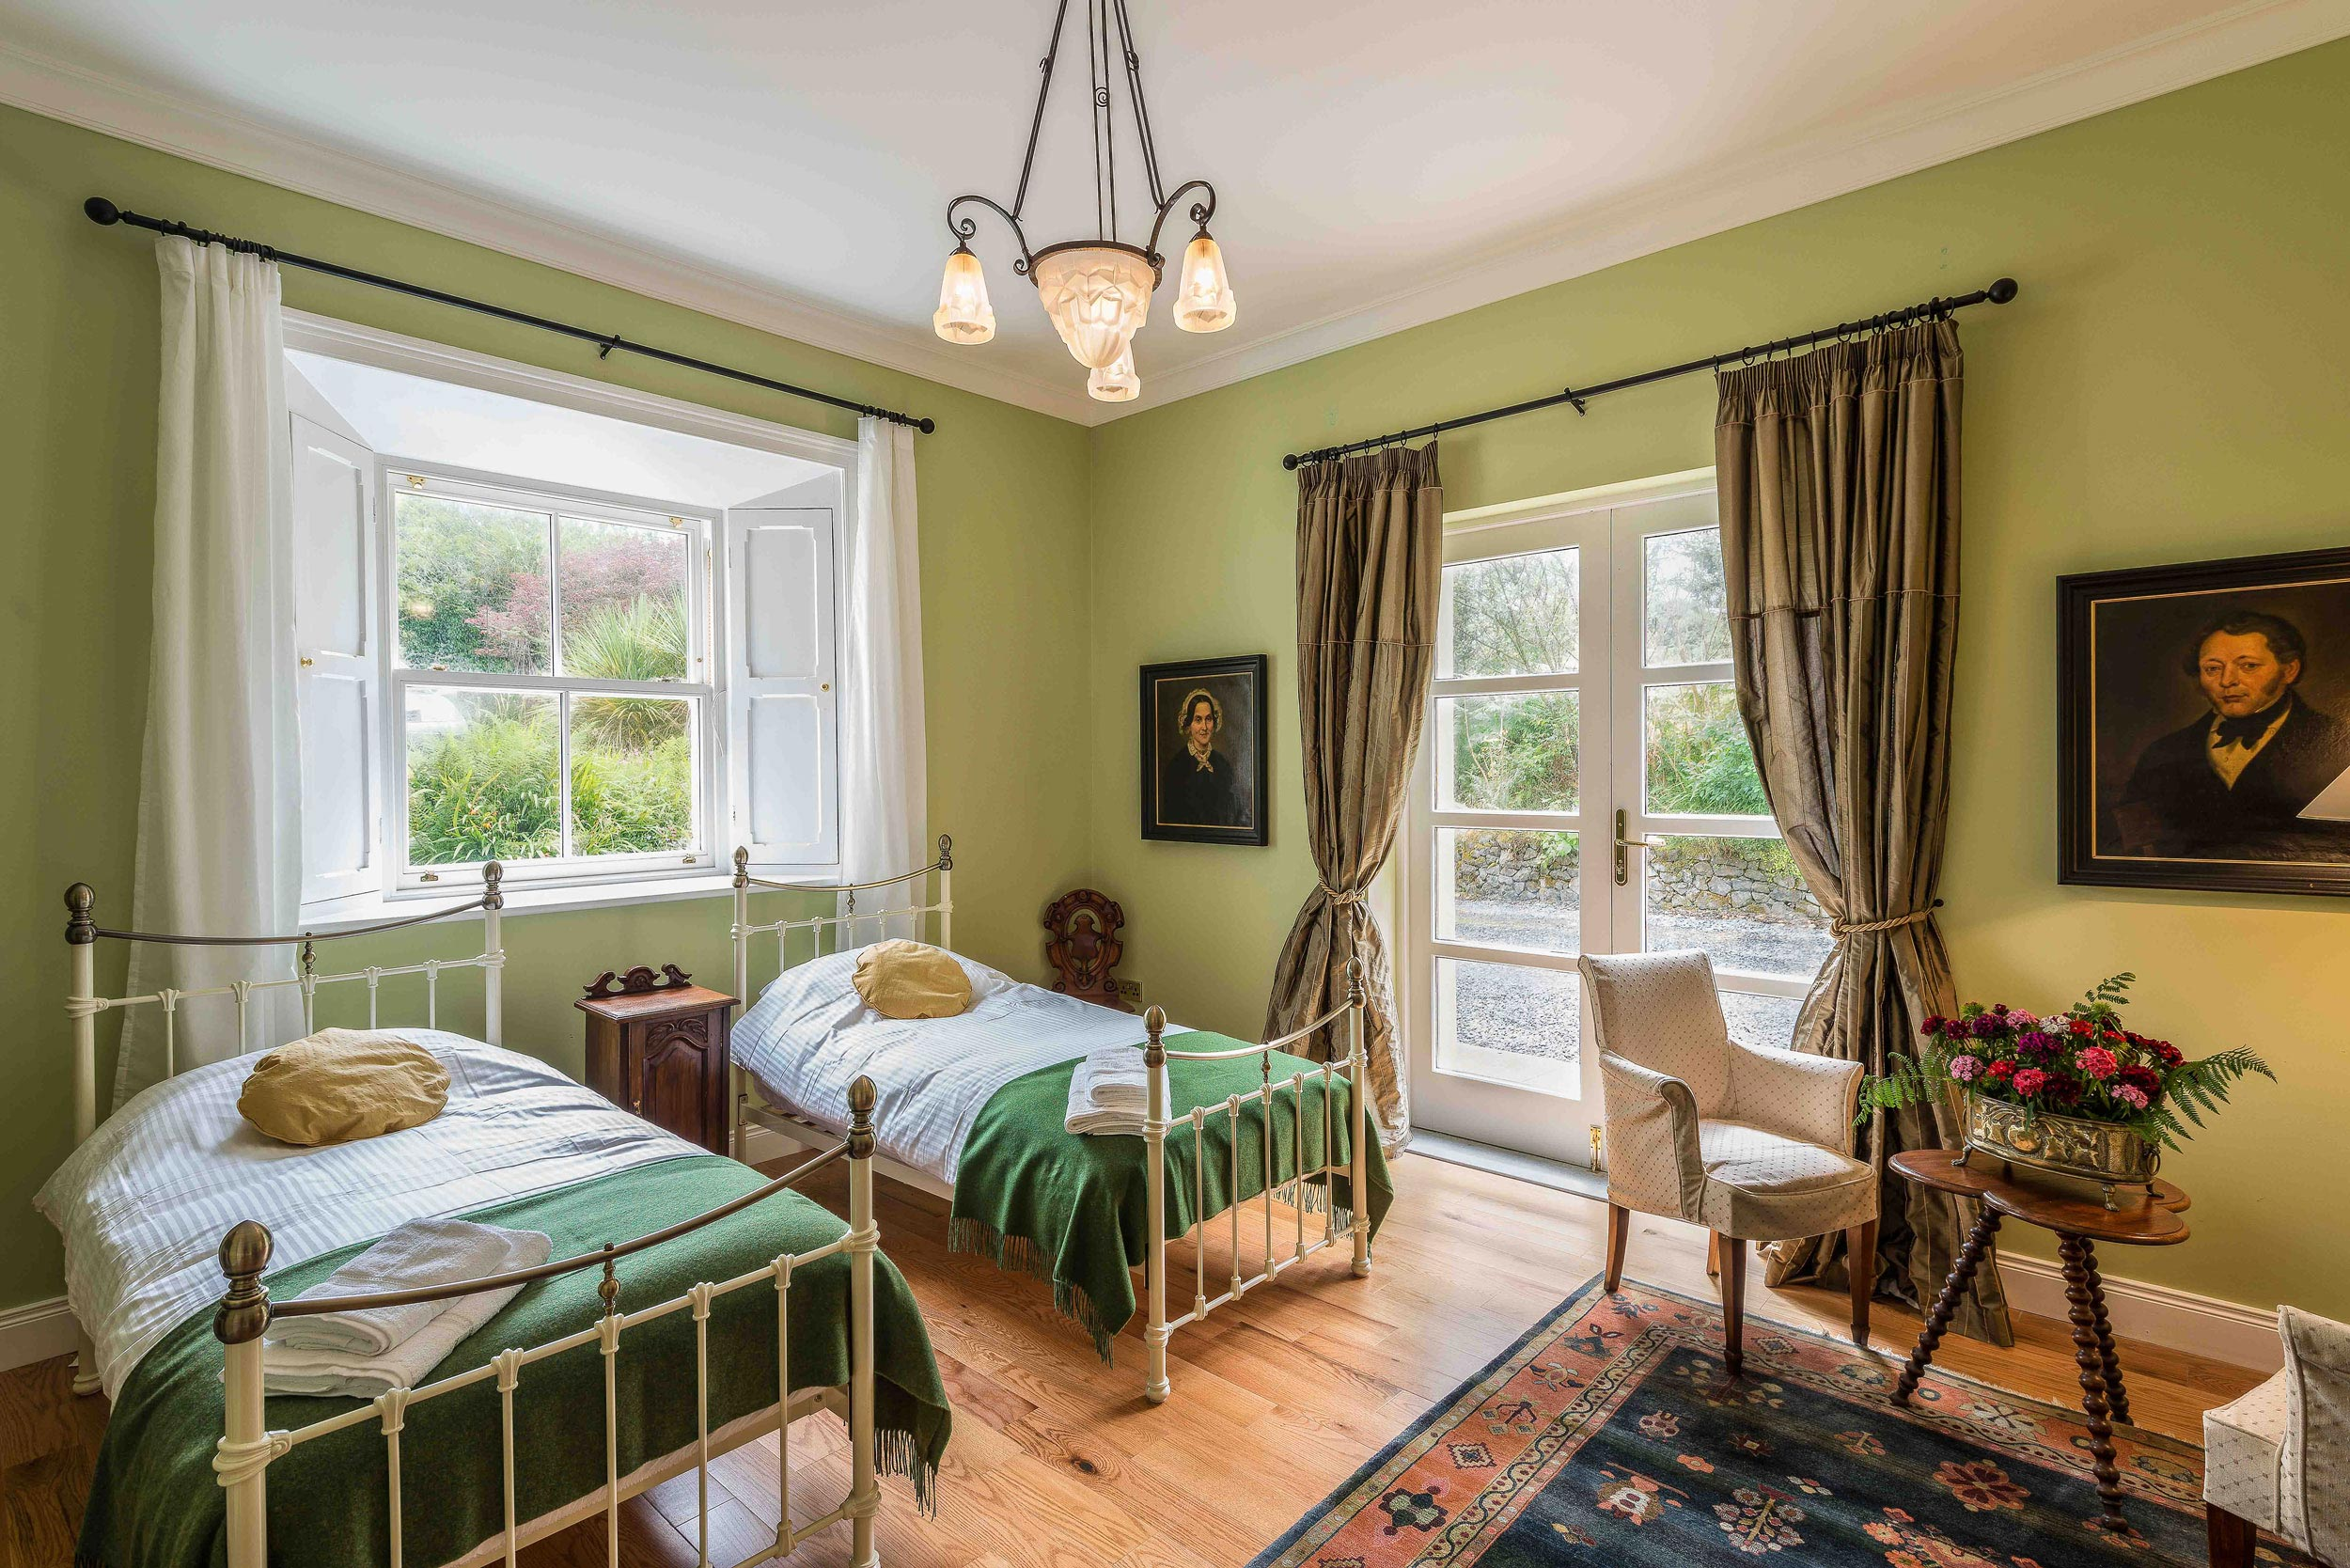 Interiors-photographer-Mayo-Ireland-killadangan-house-231